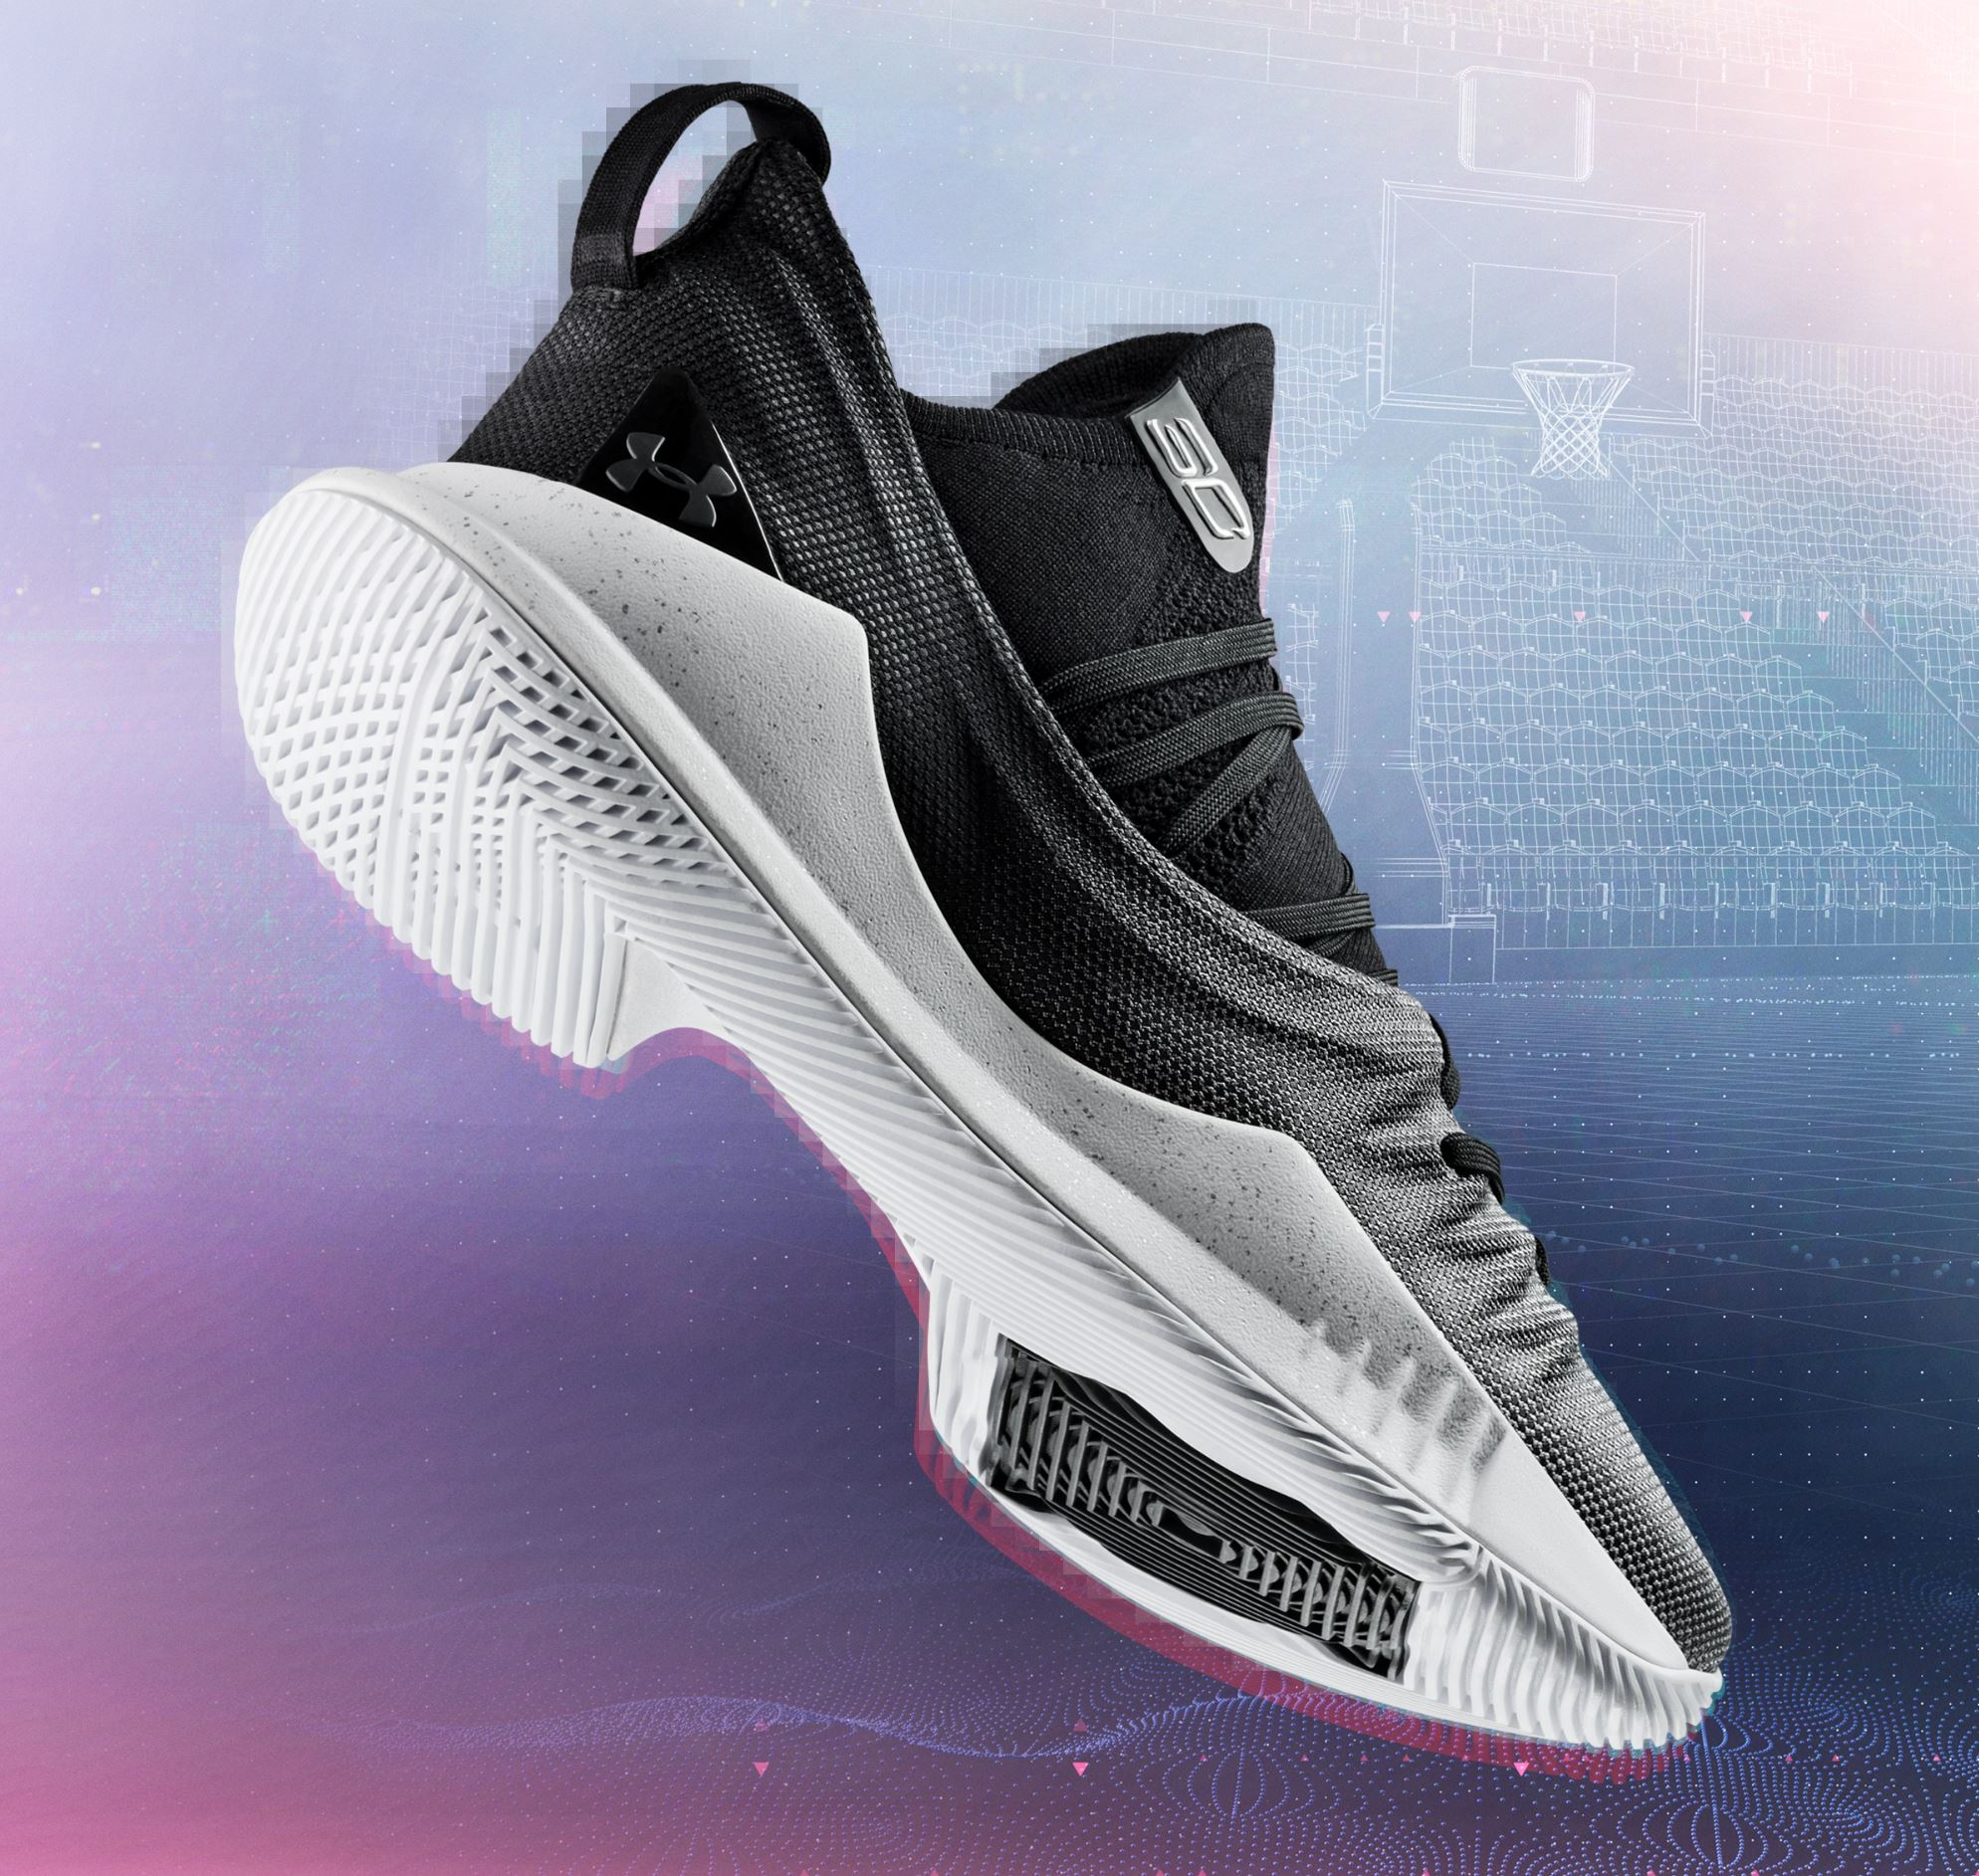 67e208970726 under armour curry 5 black white release date - WearTesters